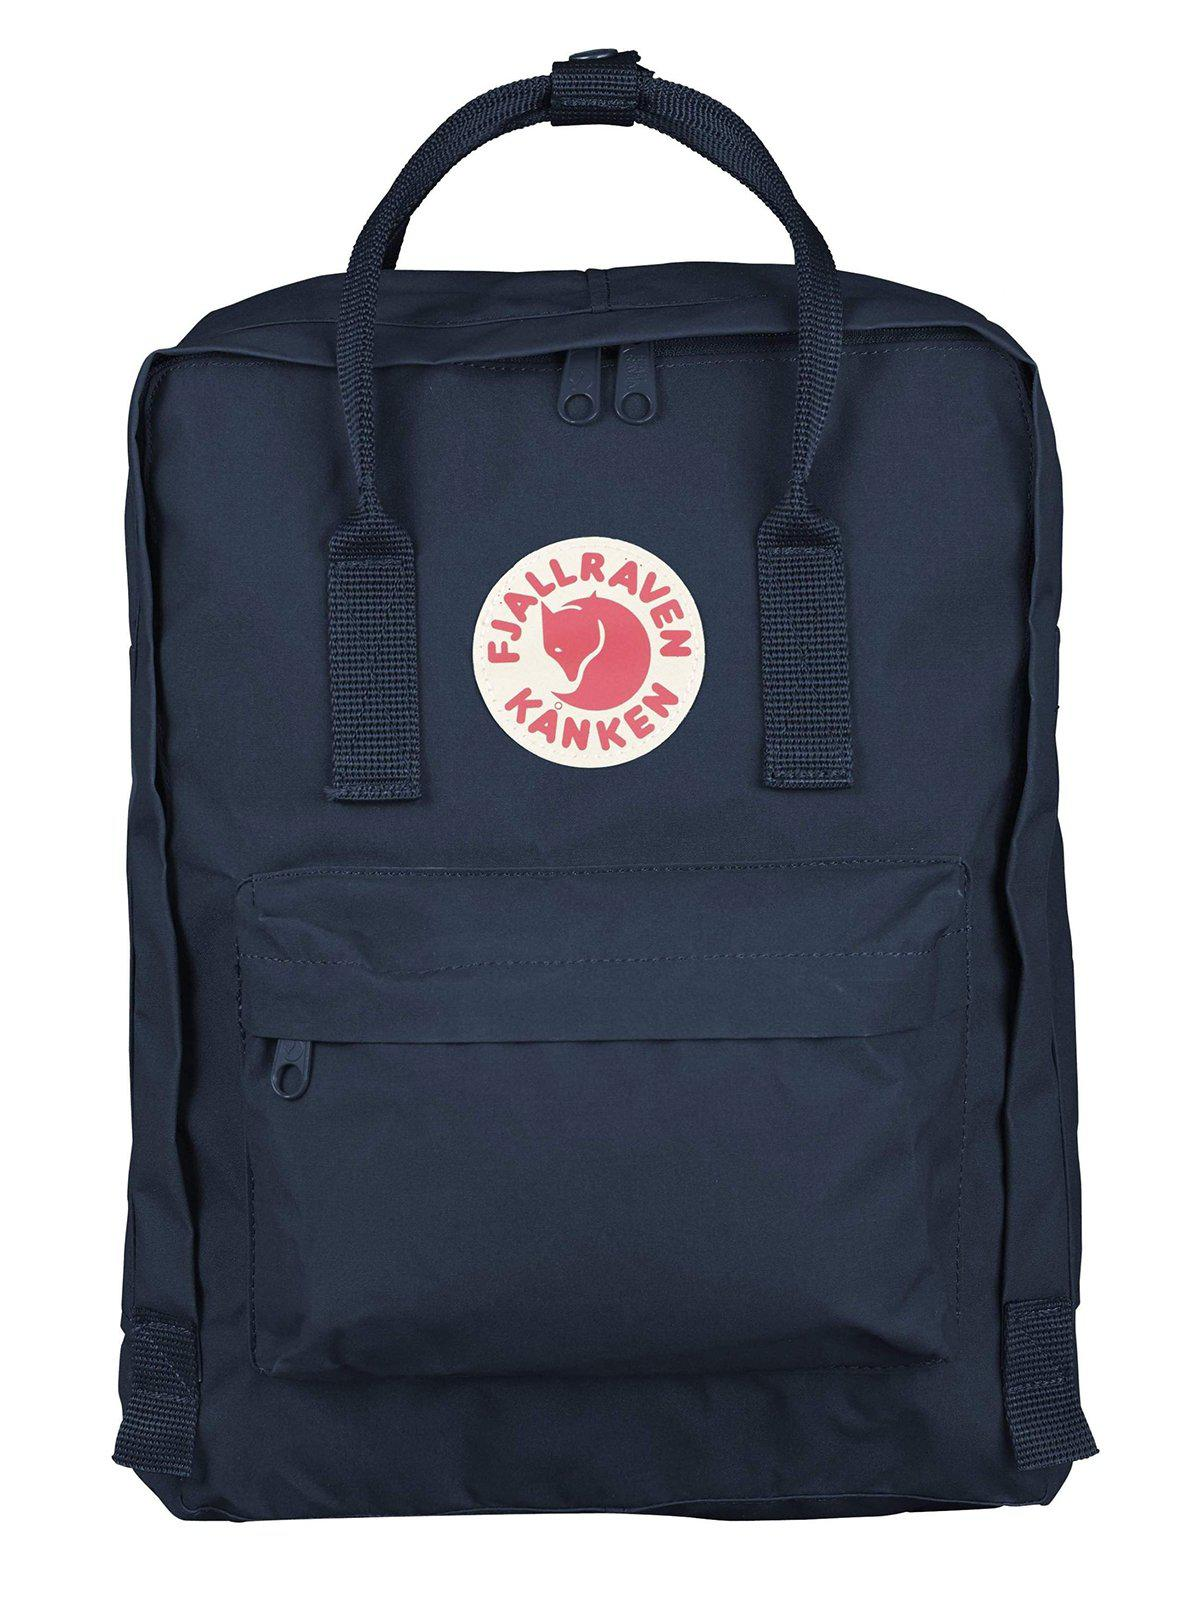 Fjallraven Kanken Classic Backpack Royal Blue - MORE by Morello Indonesia